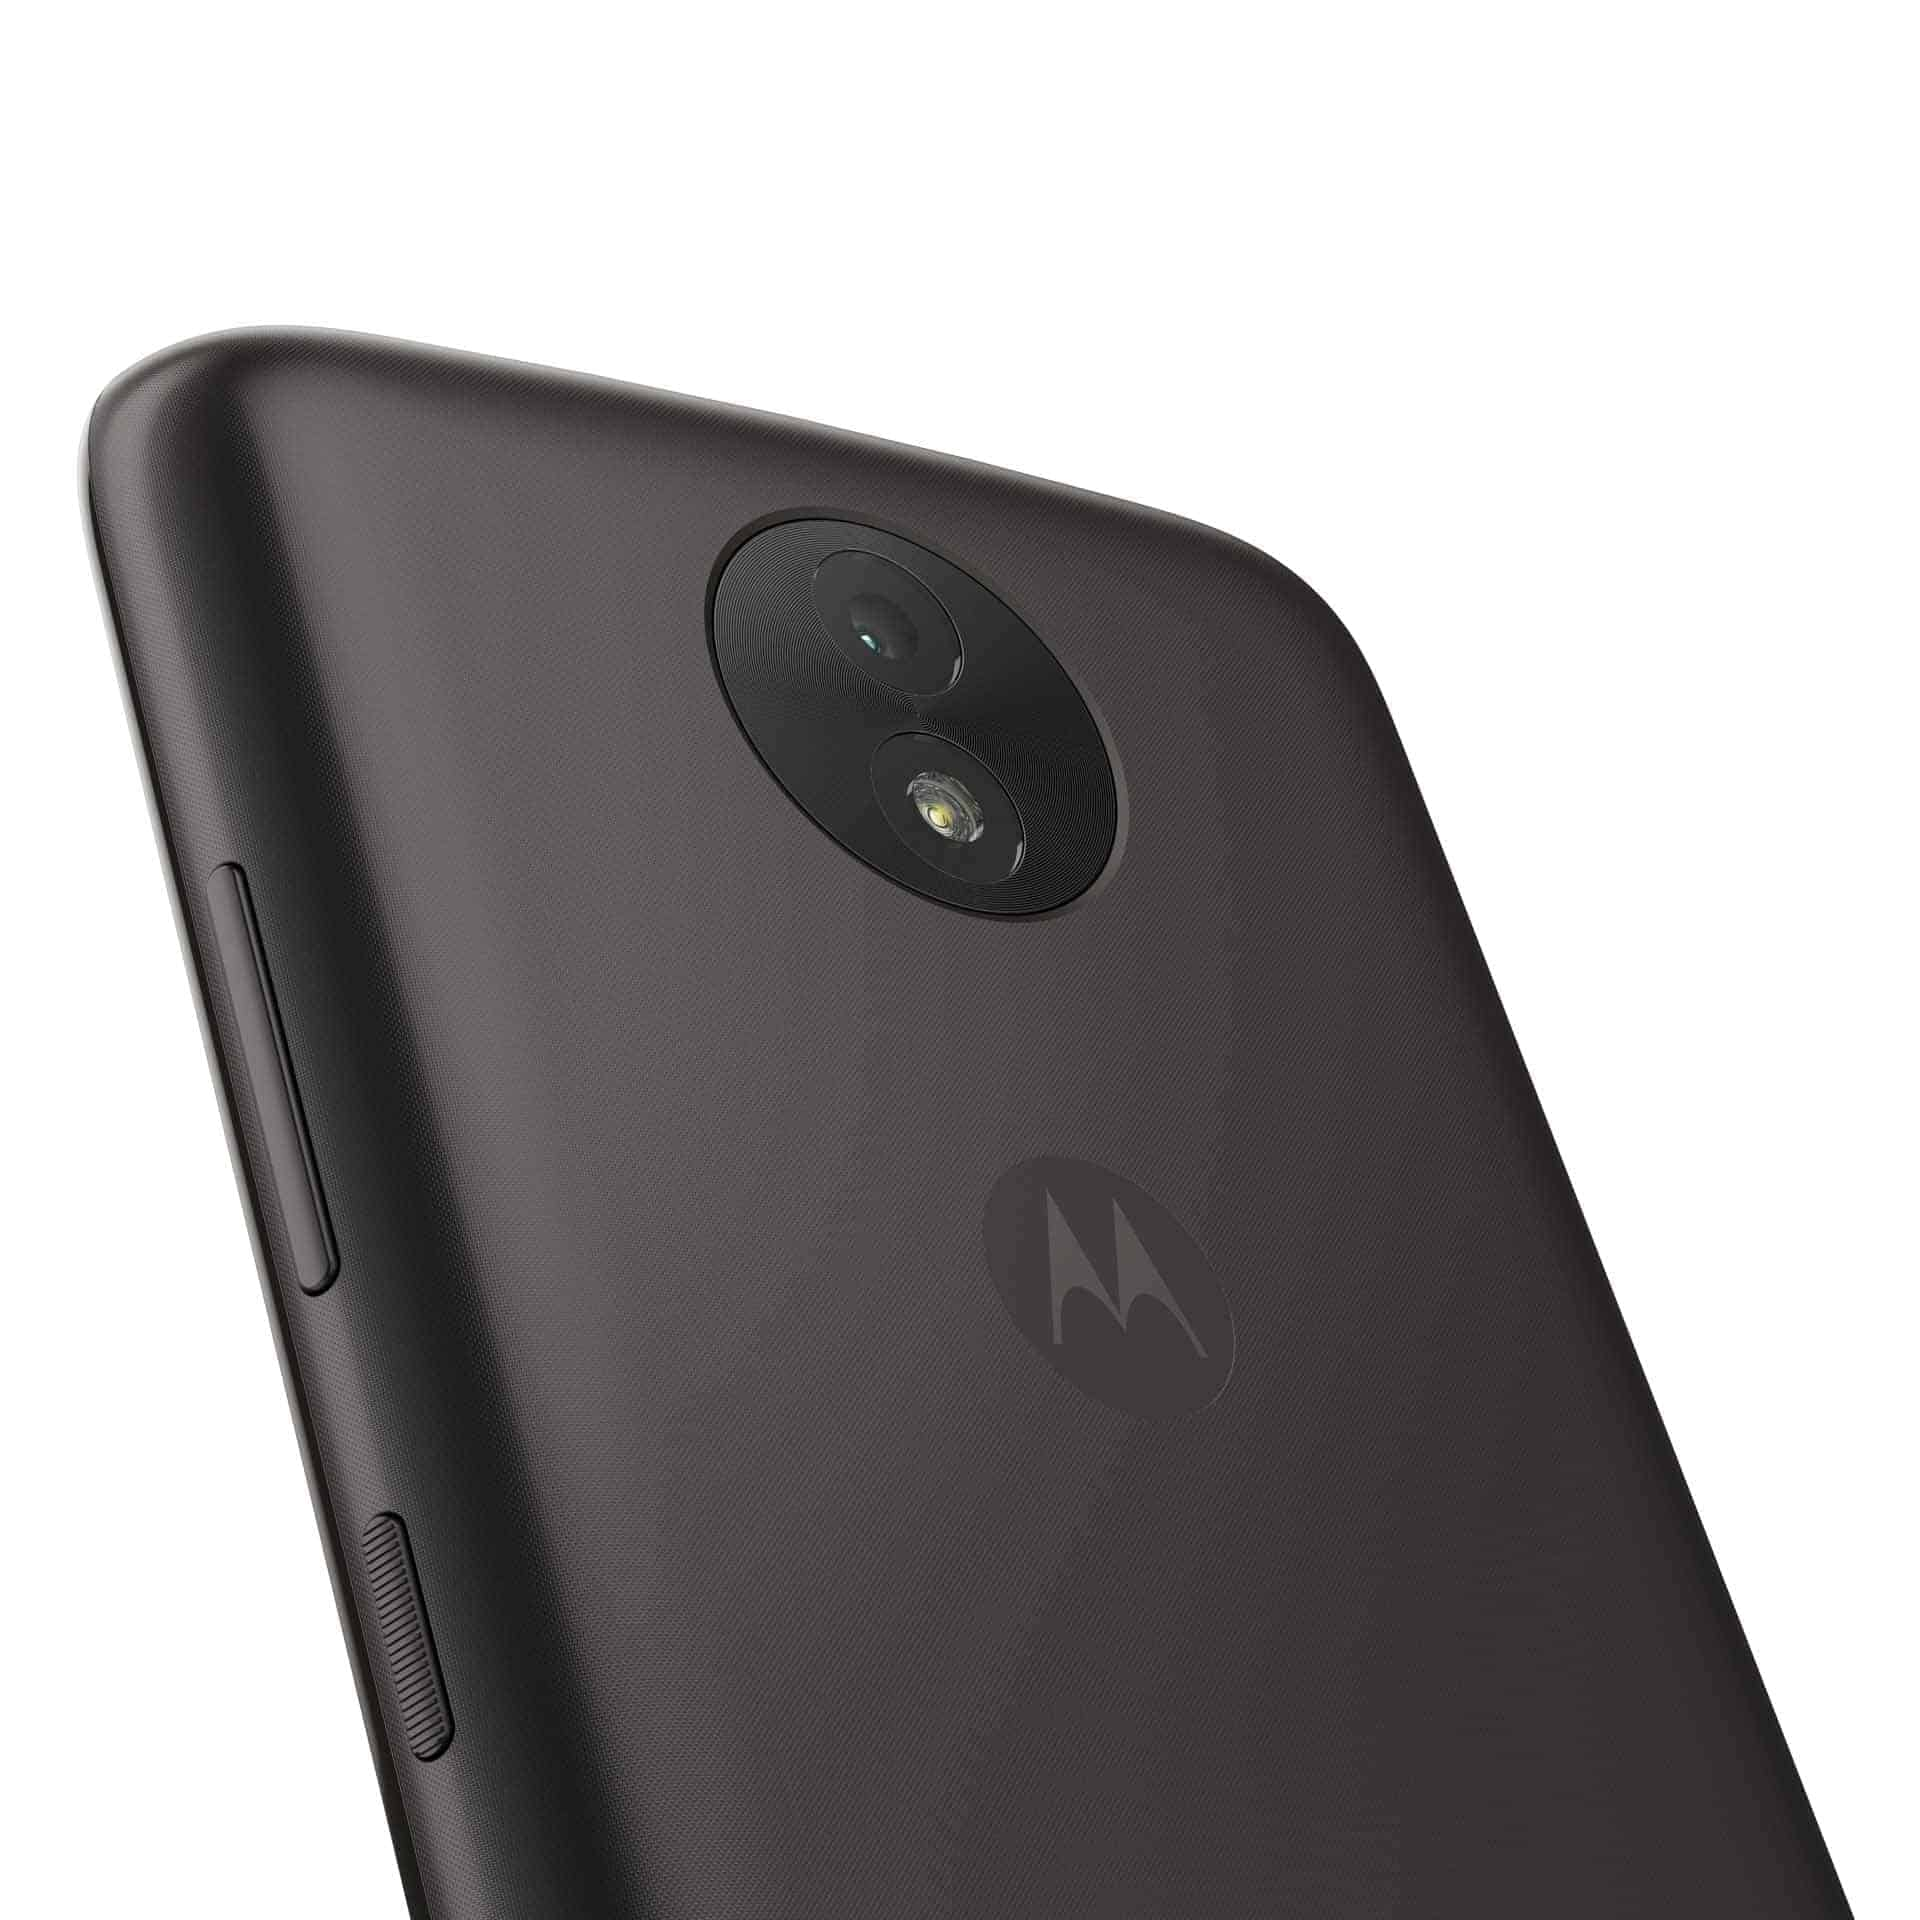 Moto C Plus Starry Black Back Detail